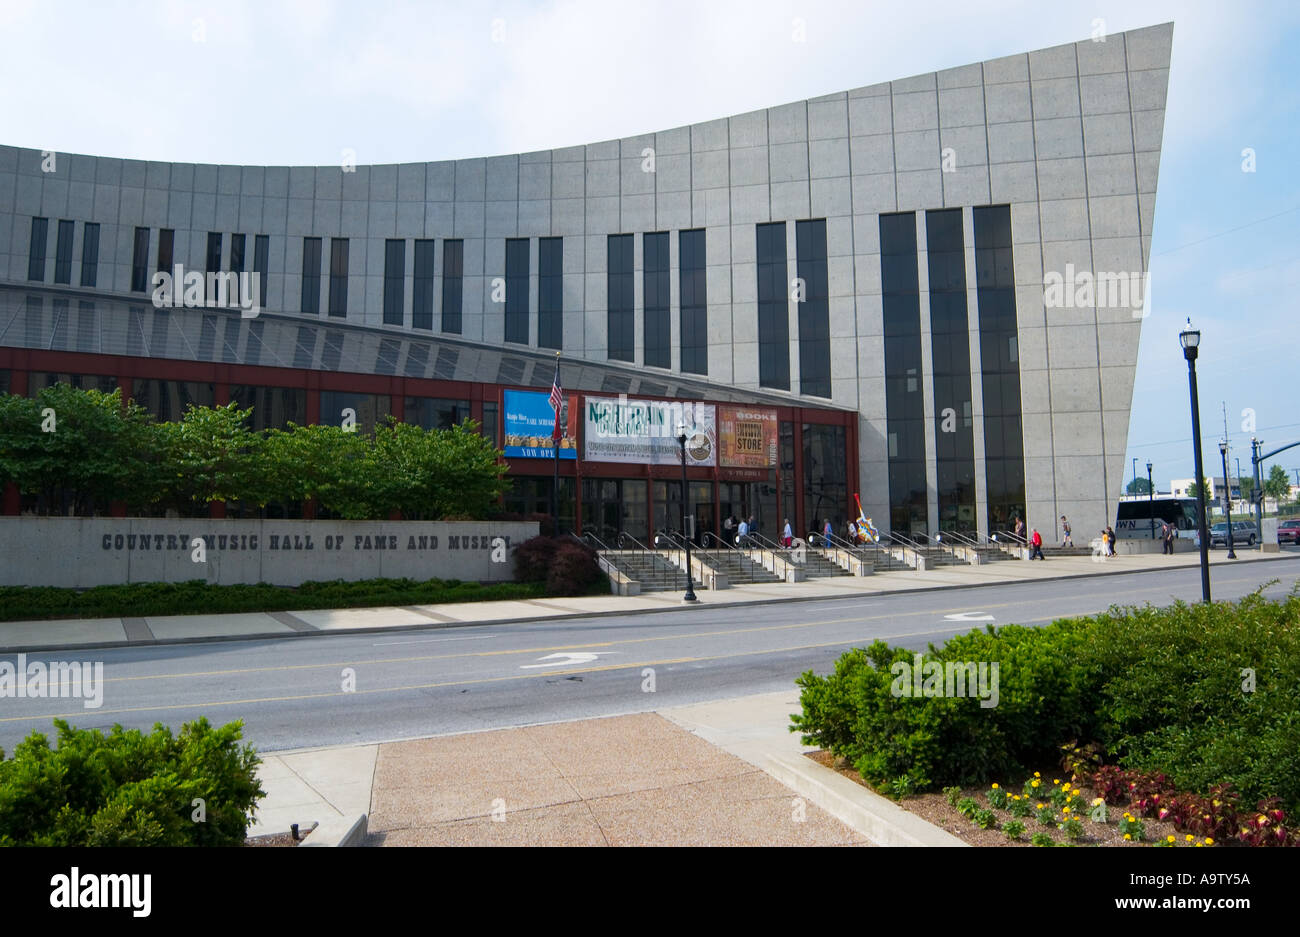 Stock Photo Country Music Hall Of Fame Nashville Tennessee USA - Stock Image